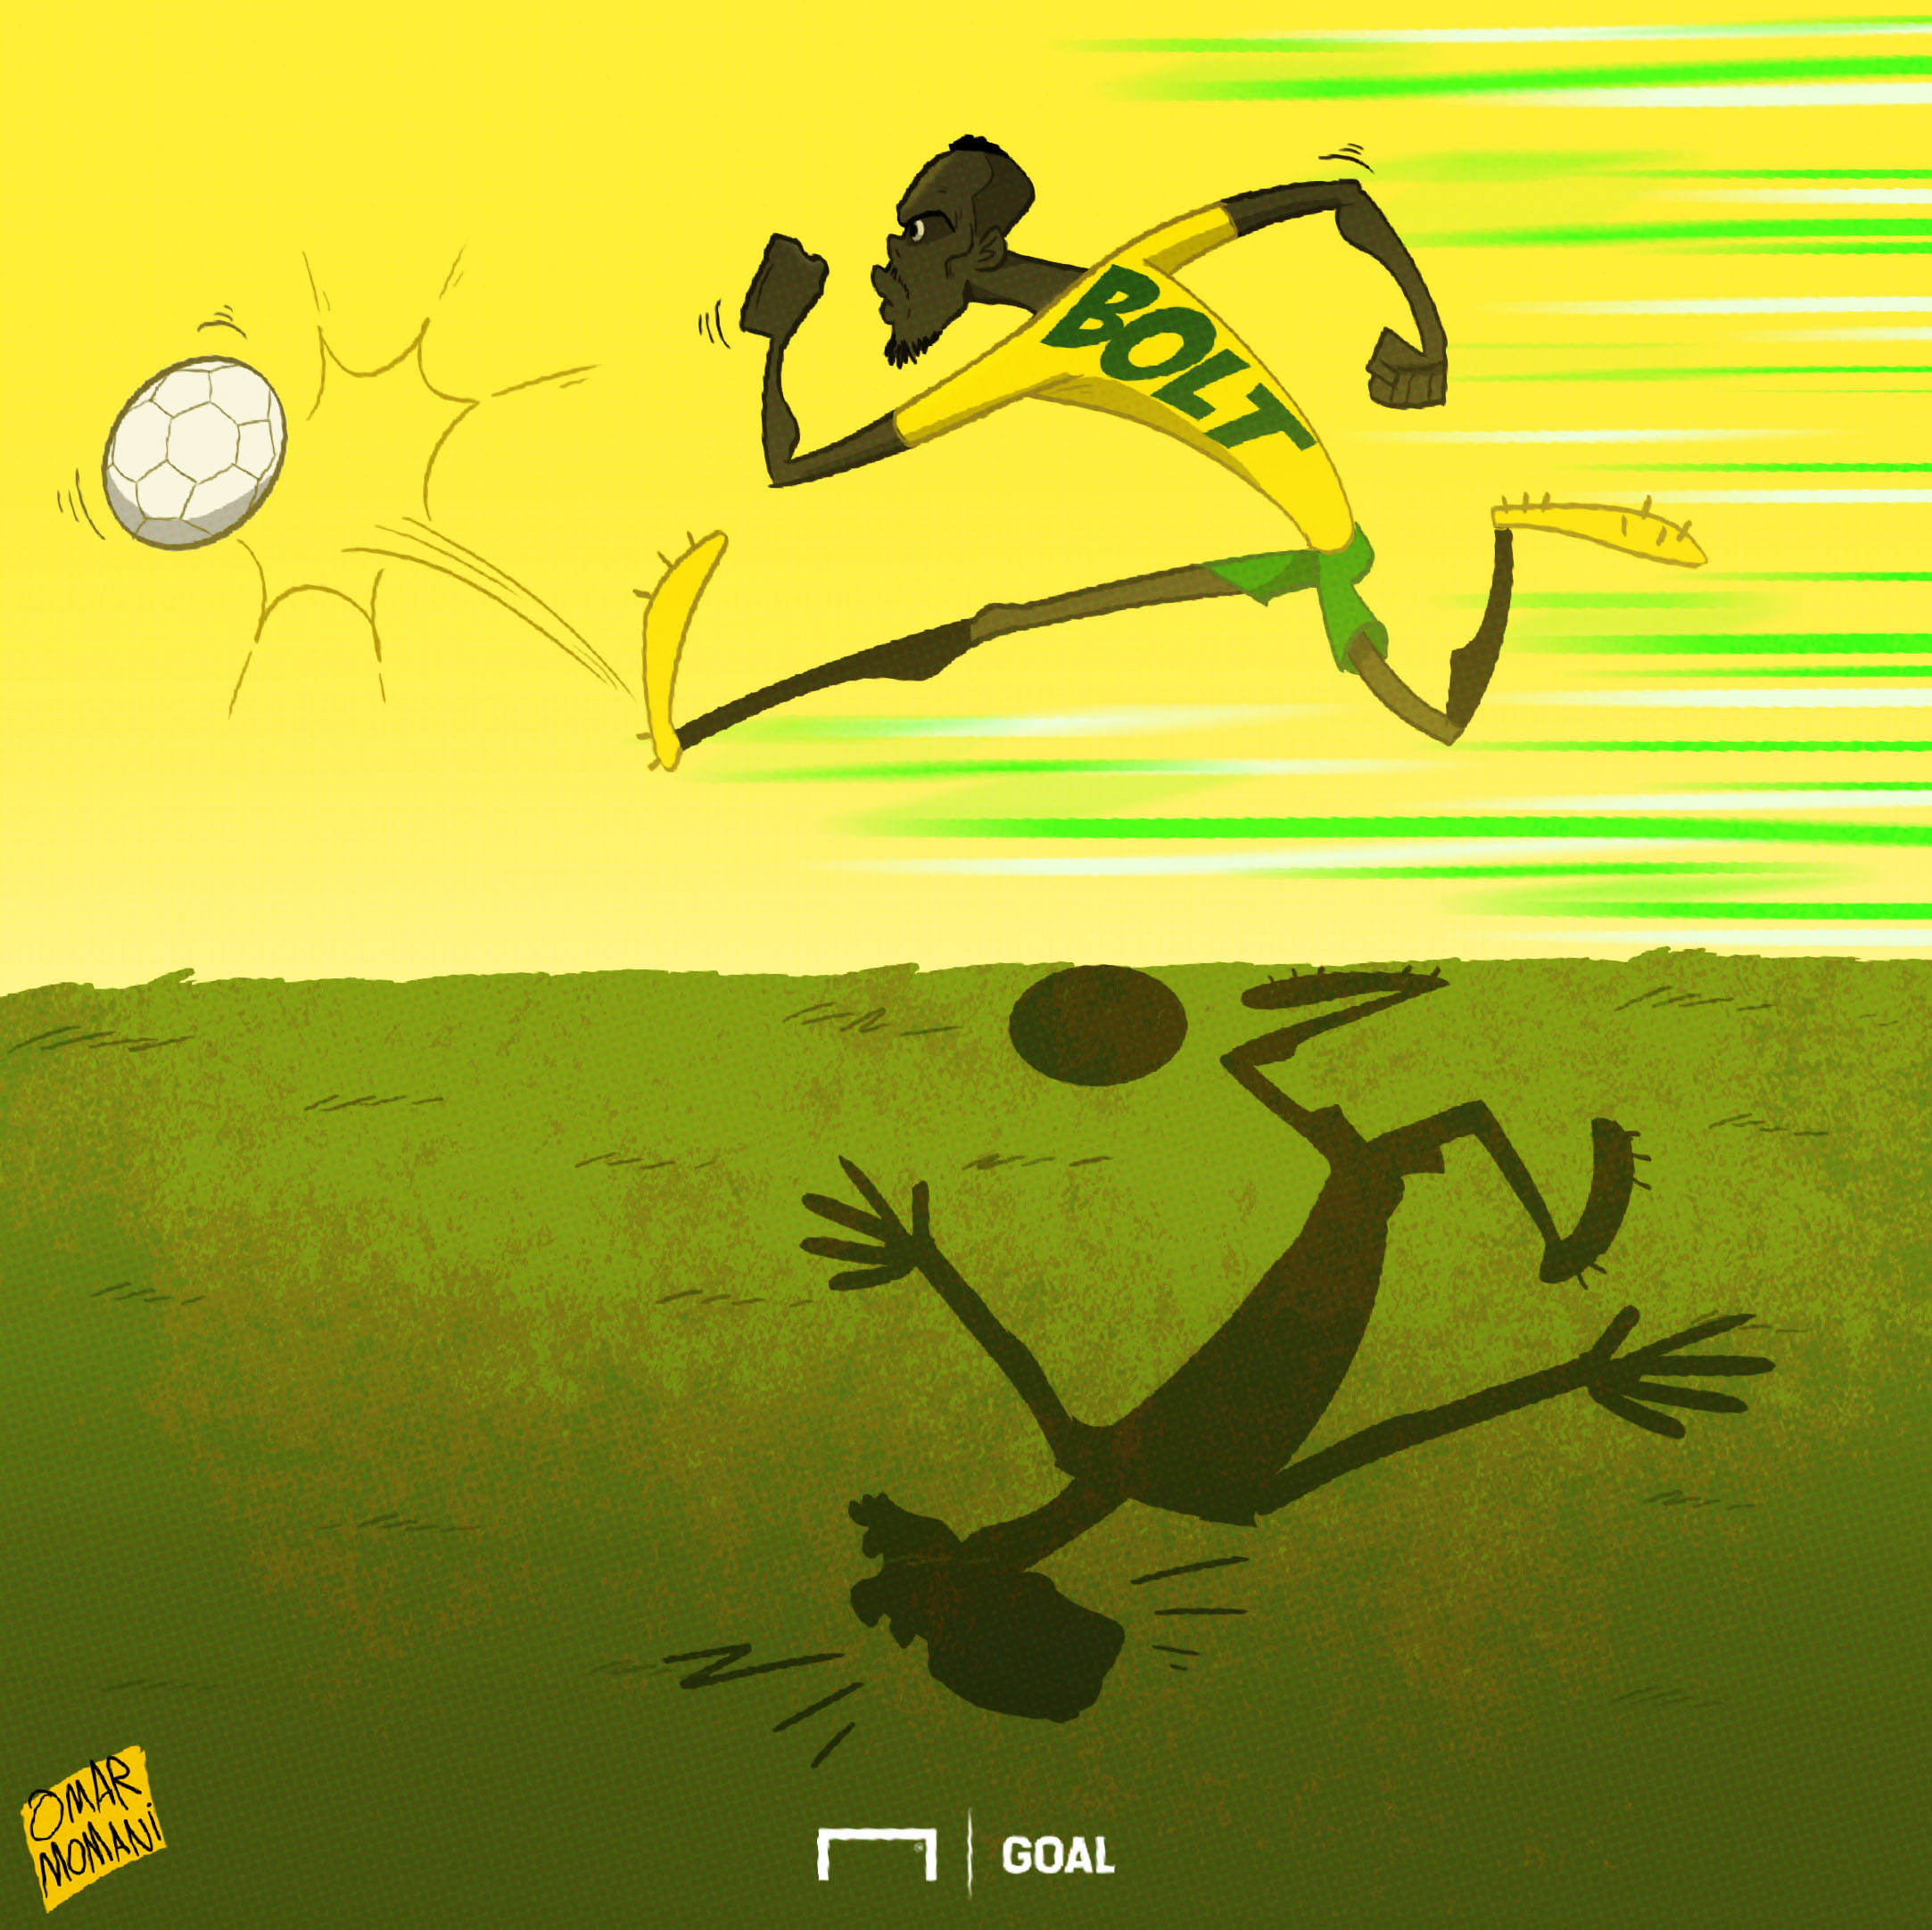 Cartoon: Usain Bolt's goal